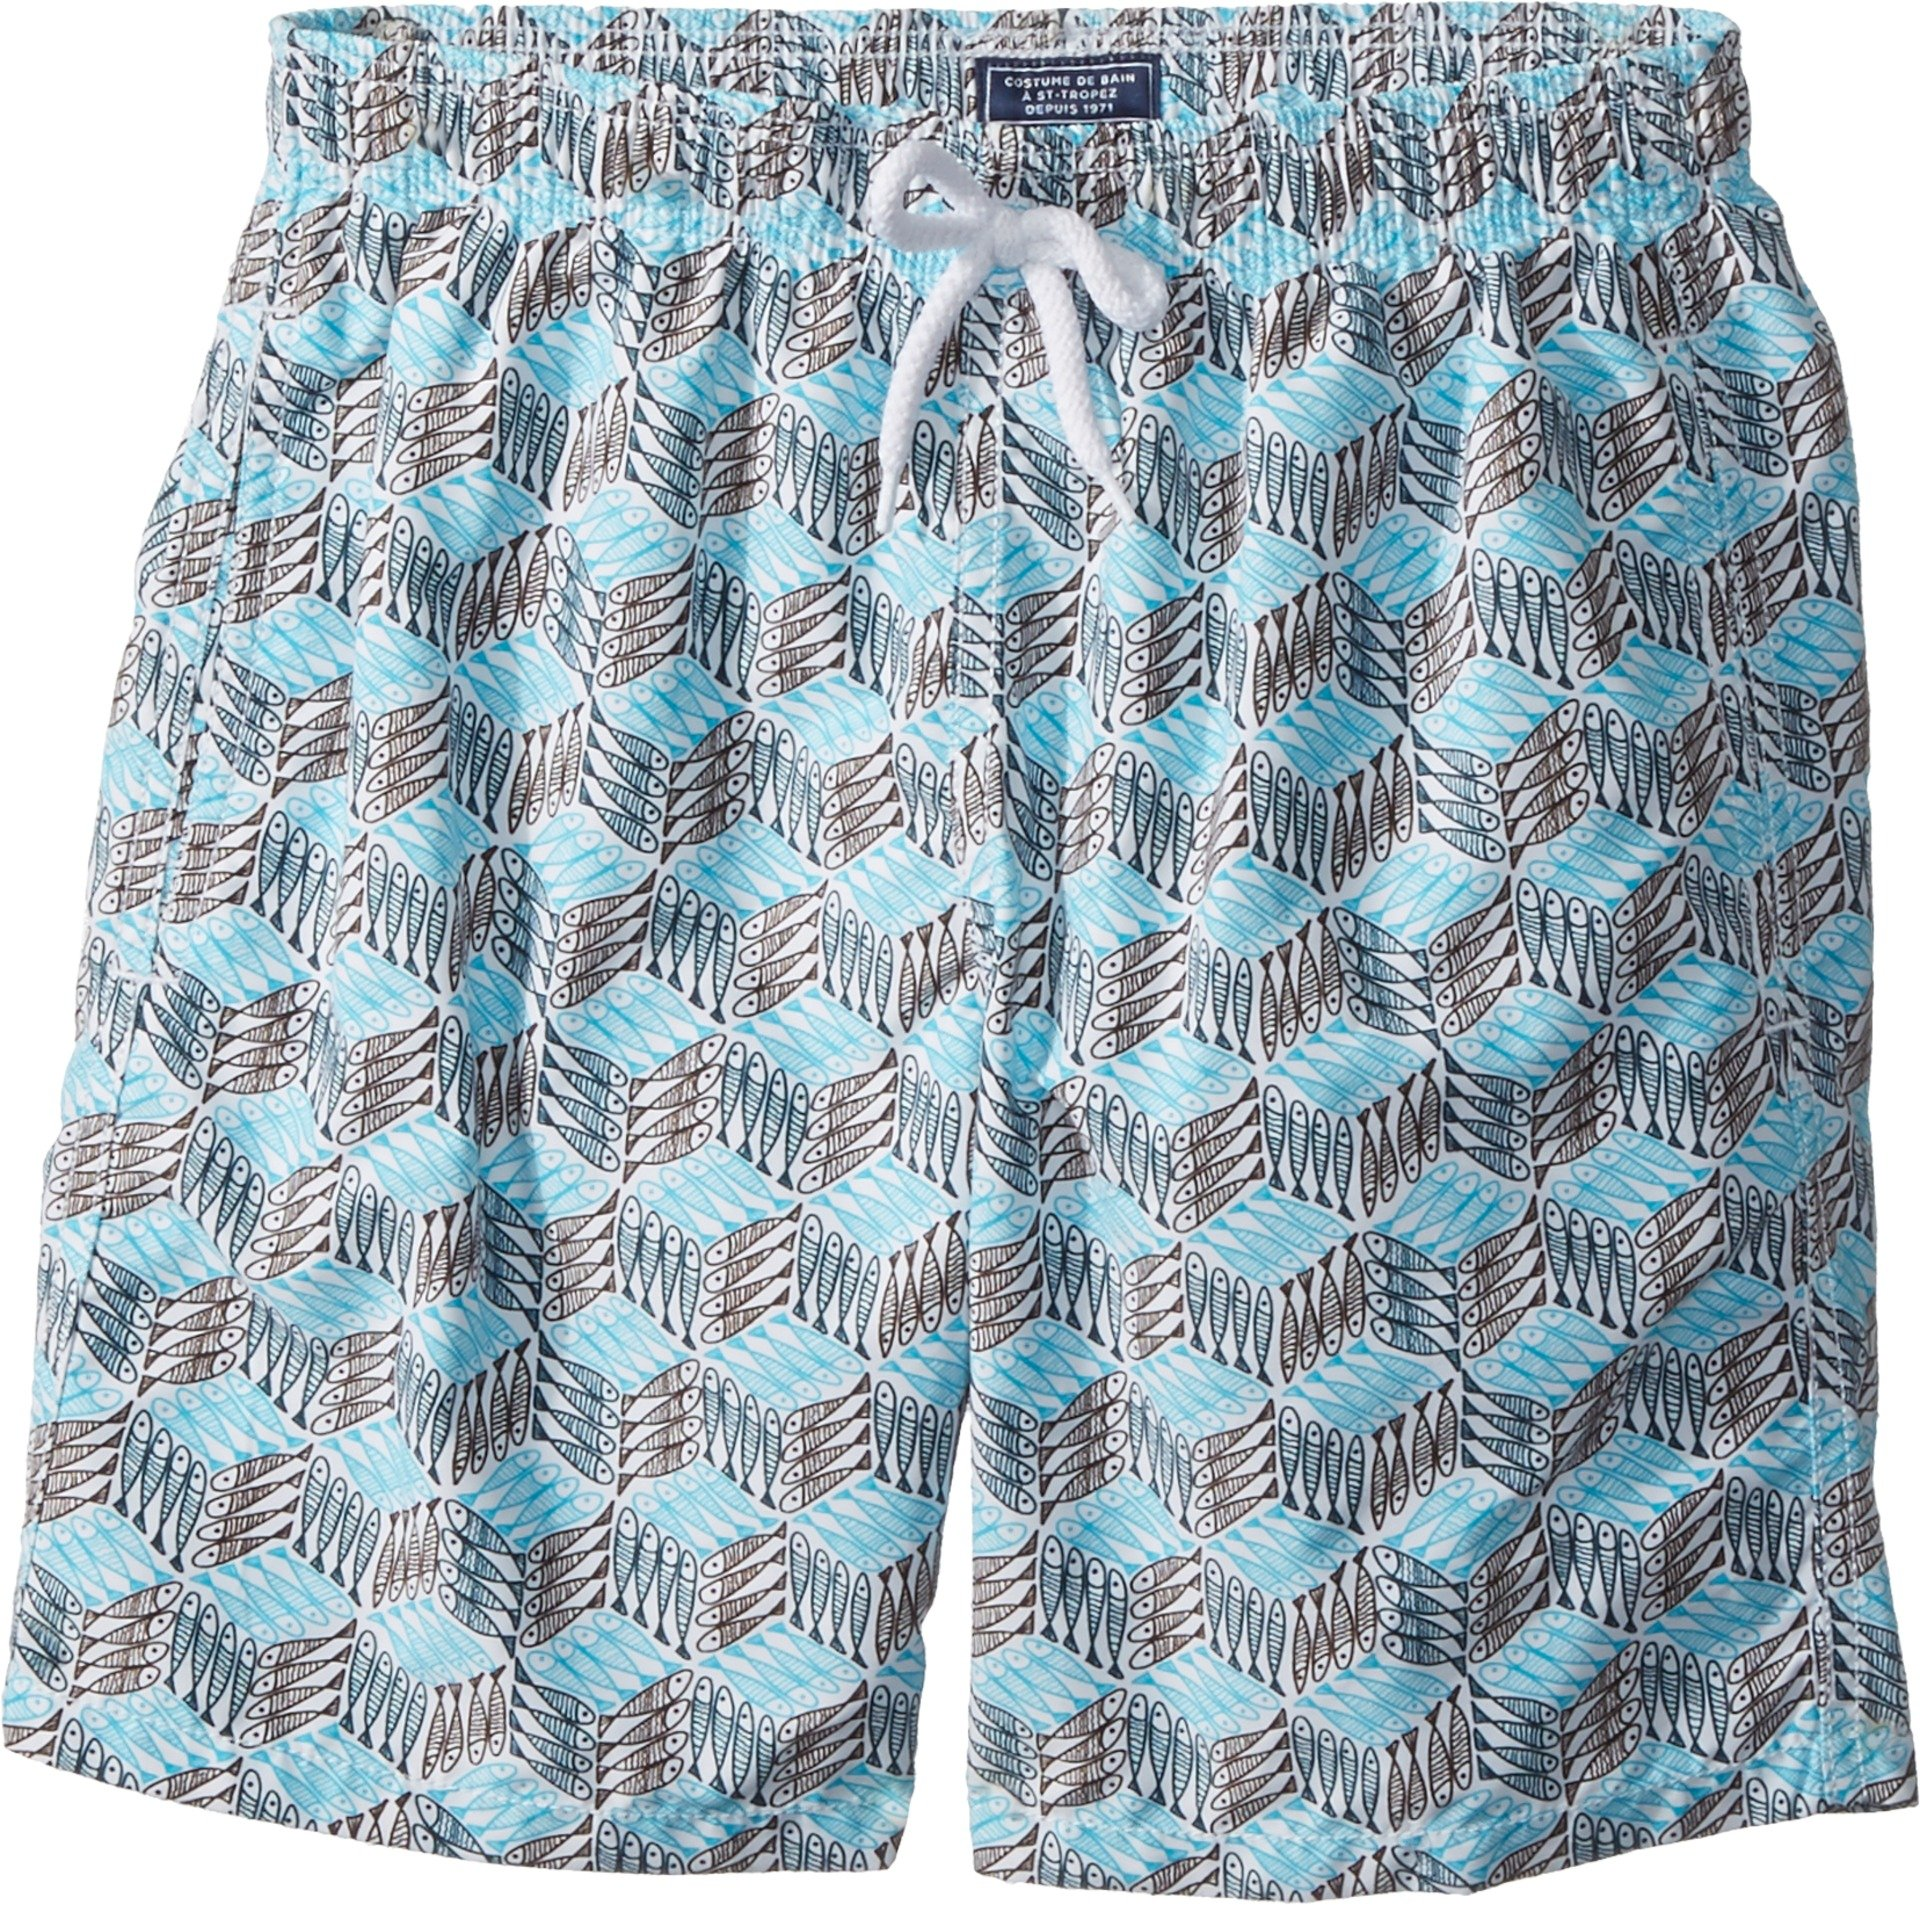 Vilebrequin Kids Boy's Fishes Cube Swim Trunk (Big Kids) Grey/Blue 10 Years by Vilebrequin Kids (Image #1)